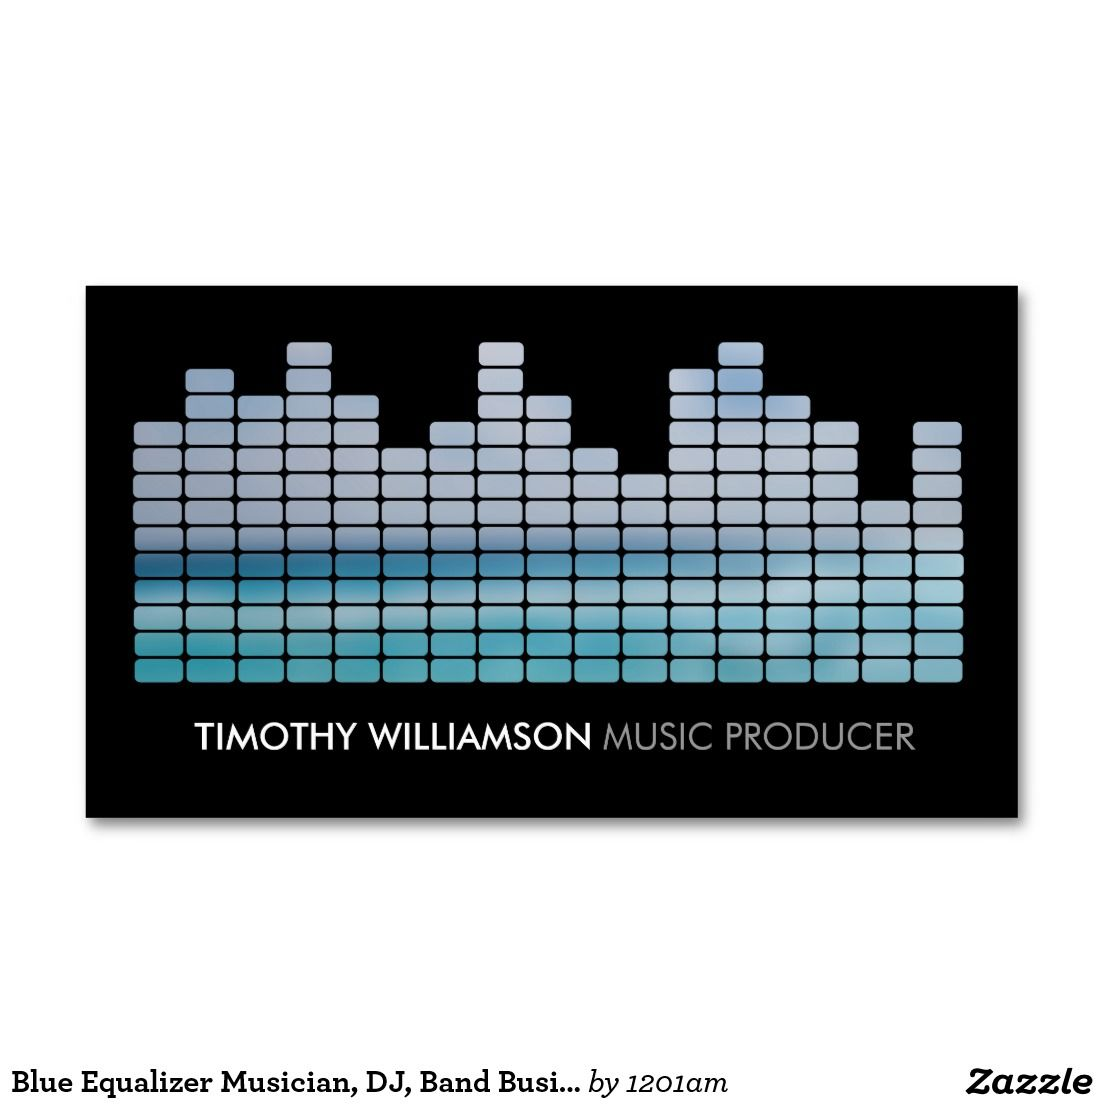 Blue Equalizer Musician, DJ, Band Business Card | Business cards ...